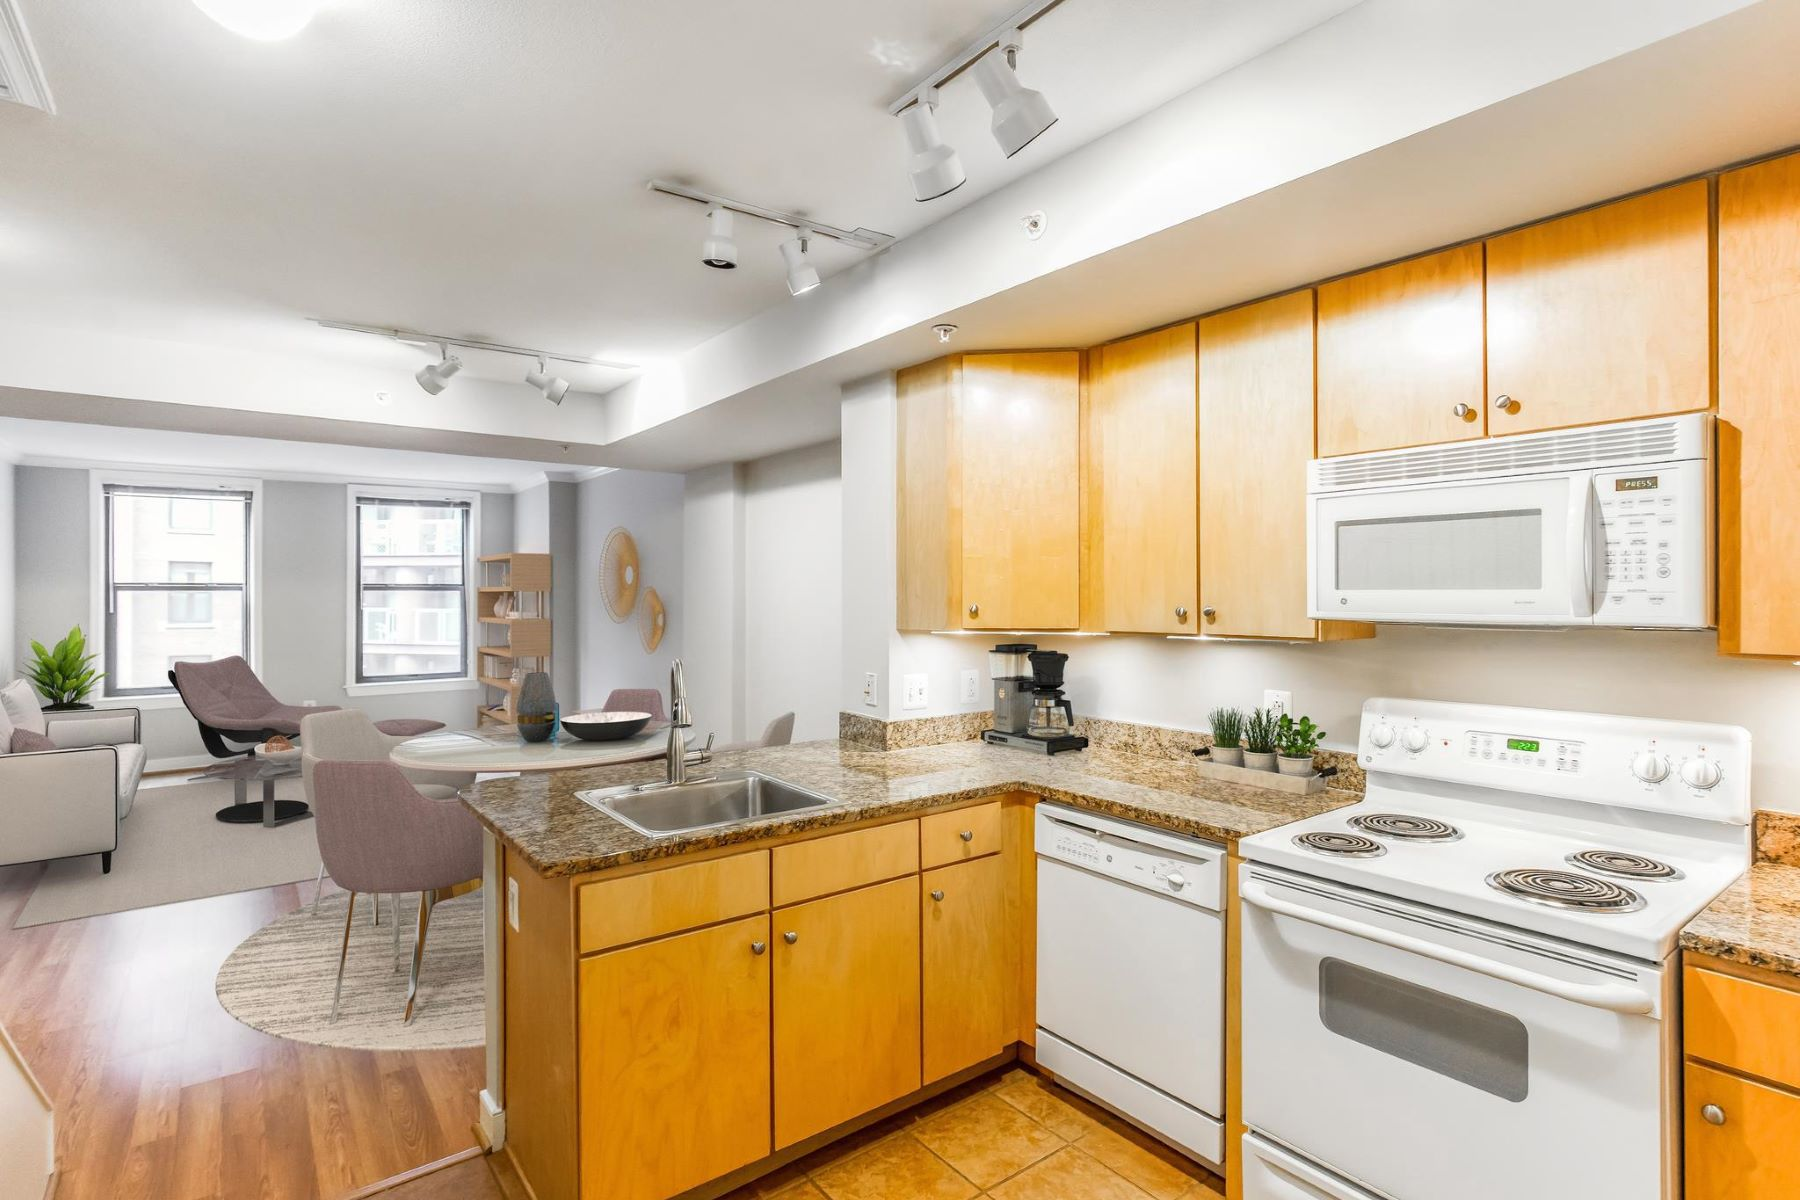 Condominium for Sale at 616 E St NW #655 Washington, District Of Columbia 20004 United States